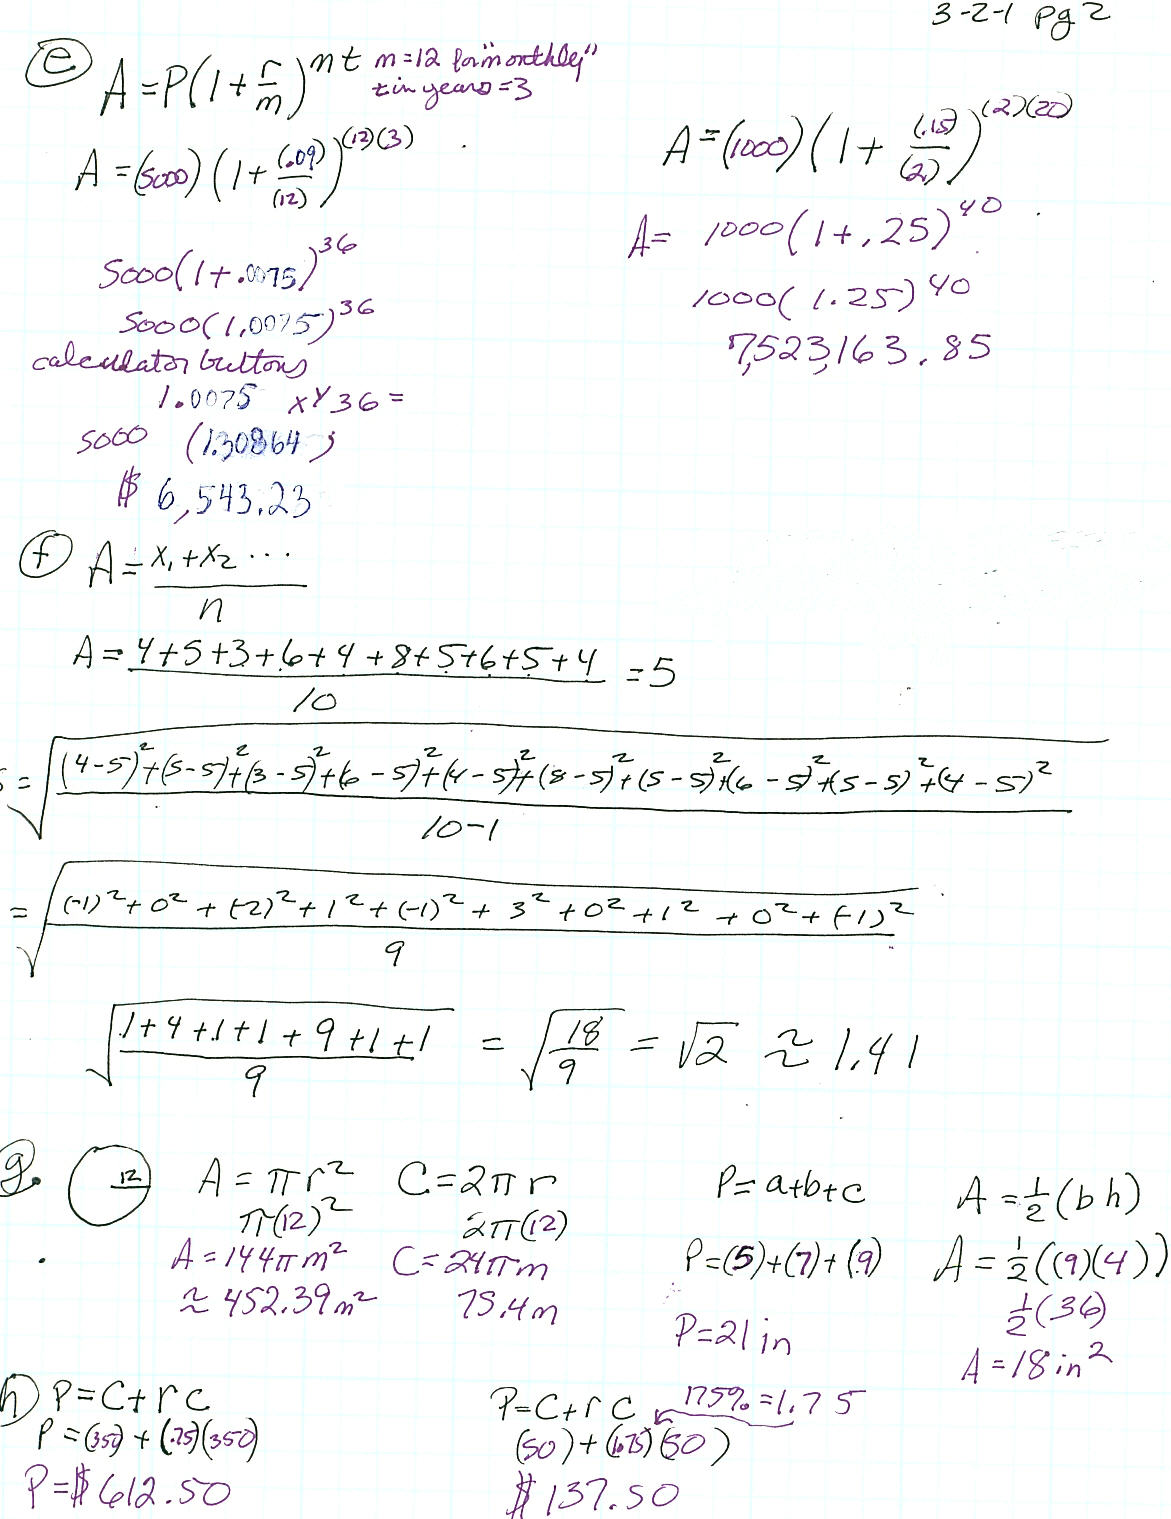 Equations With Variables On Both Sides Practice 3